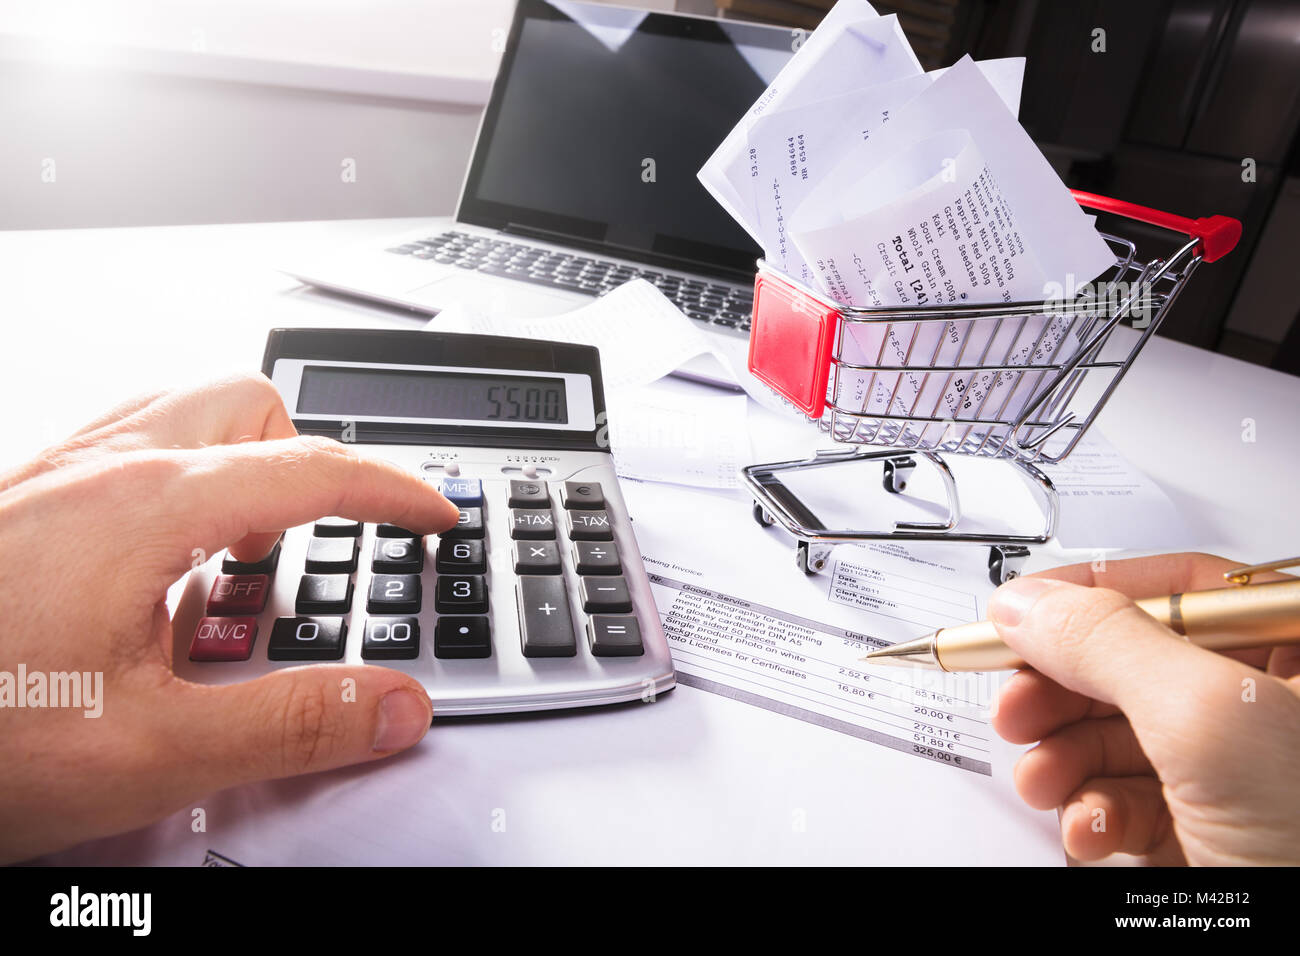 Close-up Of Person Calculating Invoice With Calculator Near Shopping Cart On Desk Stock Photo